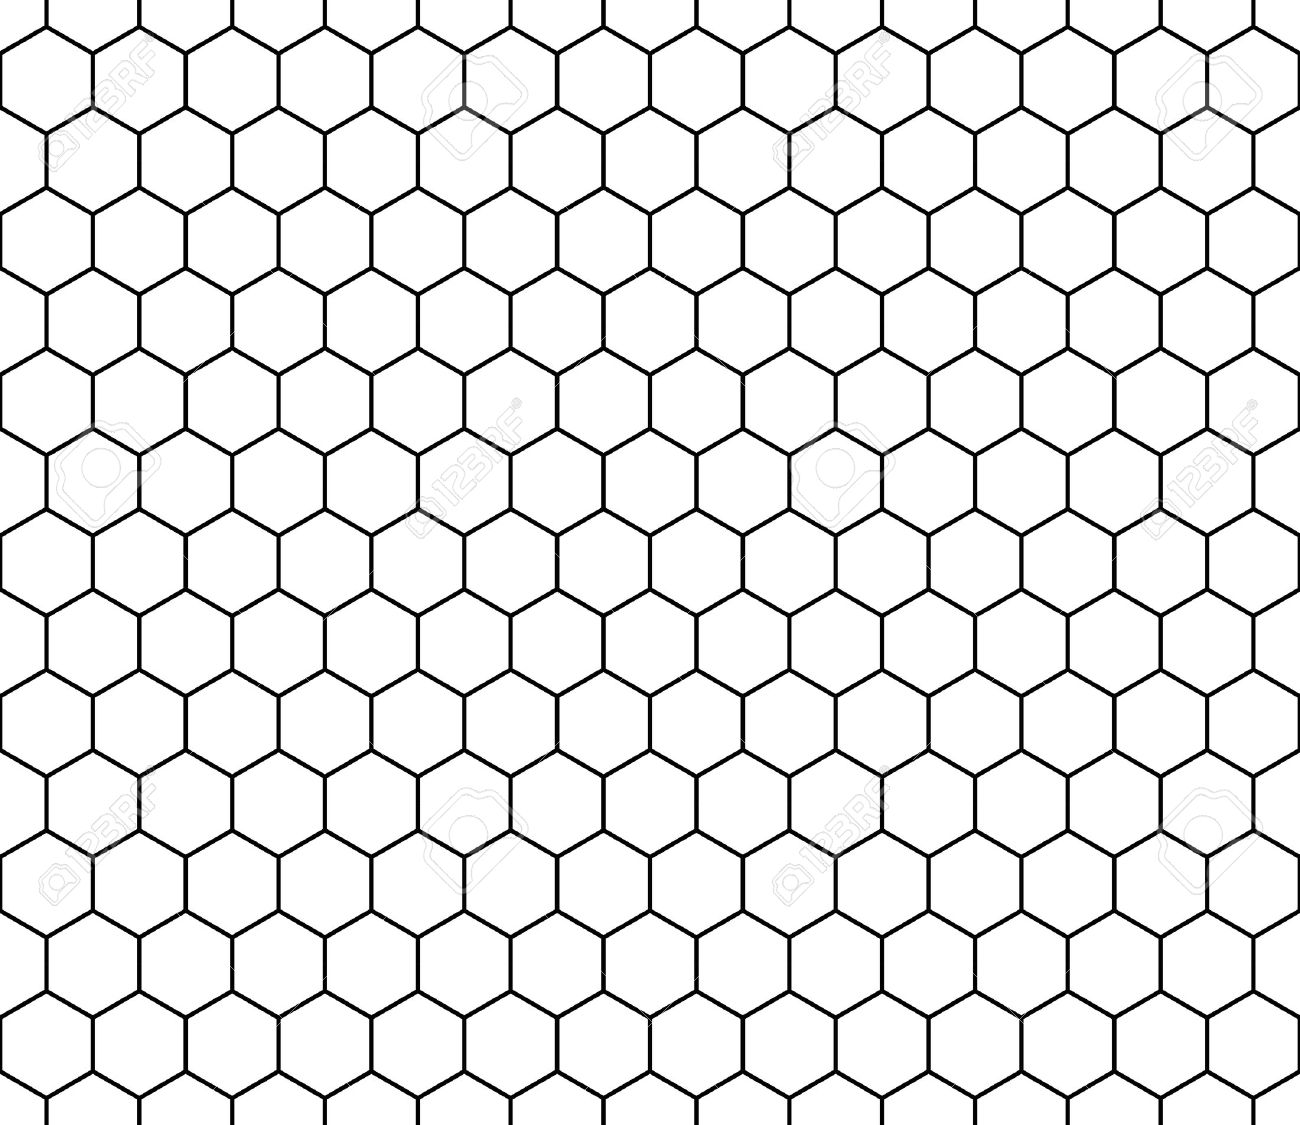 Vector modern seamless geometry pattern hexagon, black and white honeycomb abstract geometric background, subtle pillow print, monochrome retro texture, hipster fashion design - 54180368